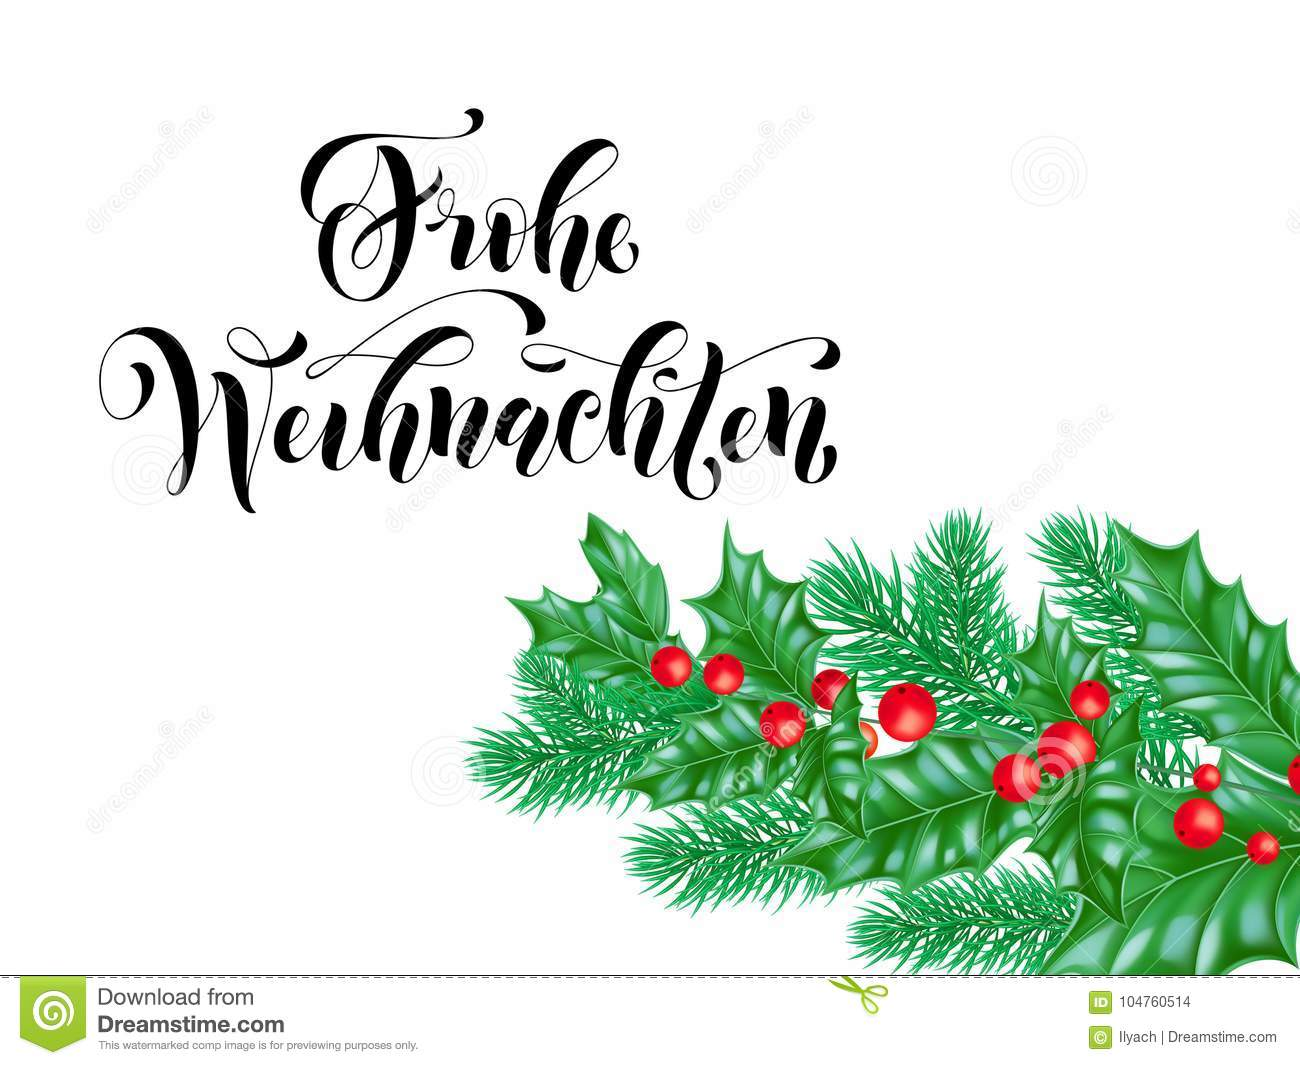 Frohe Weihnachten German Merry Christmas Holiday Hand Drawn